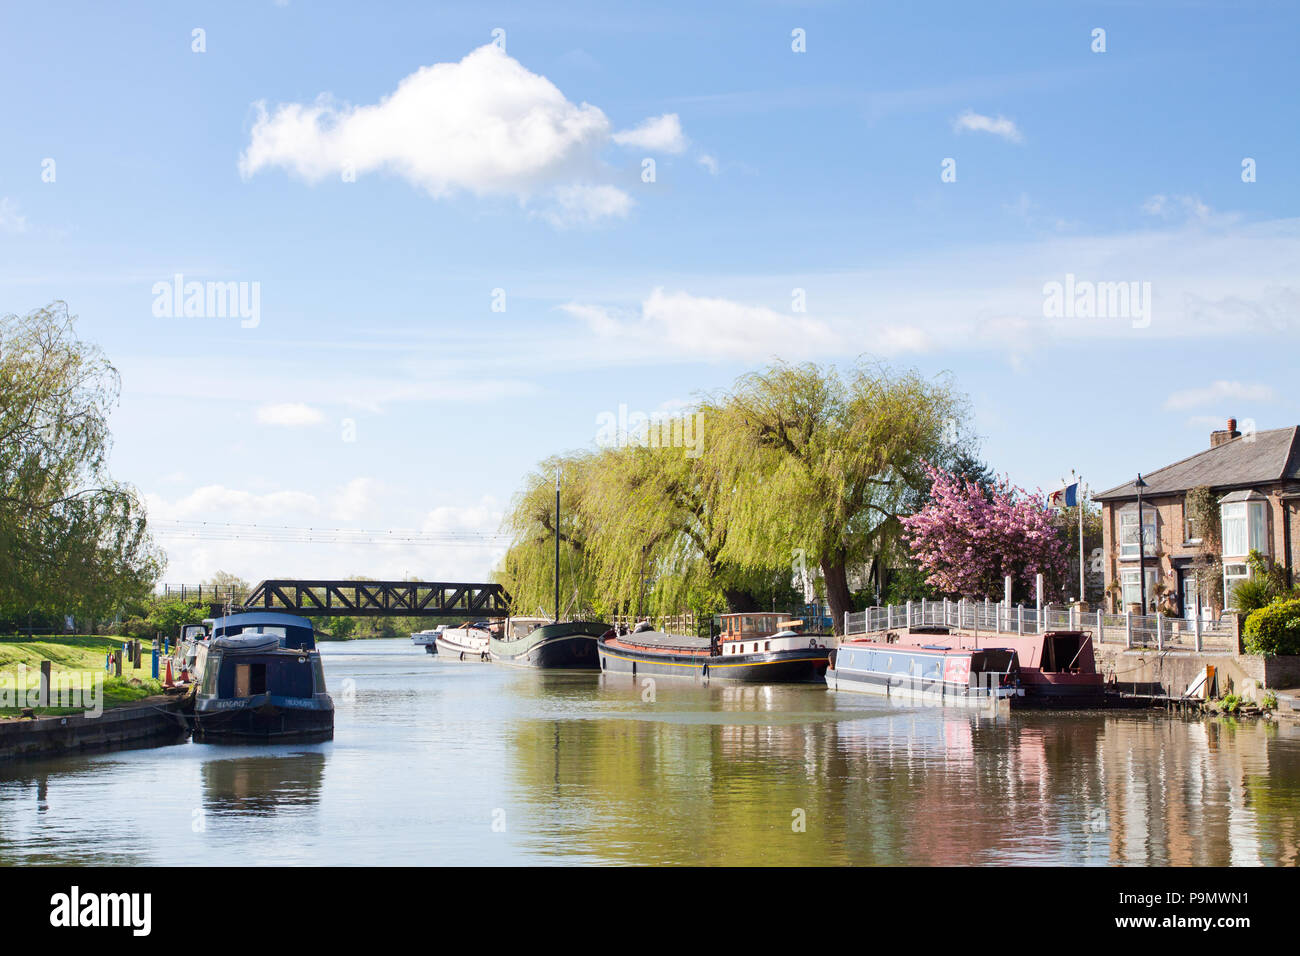 Great  Ouse riverside in sunny spring day - Stock Image